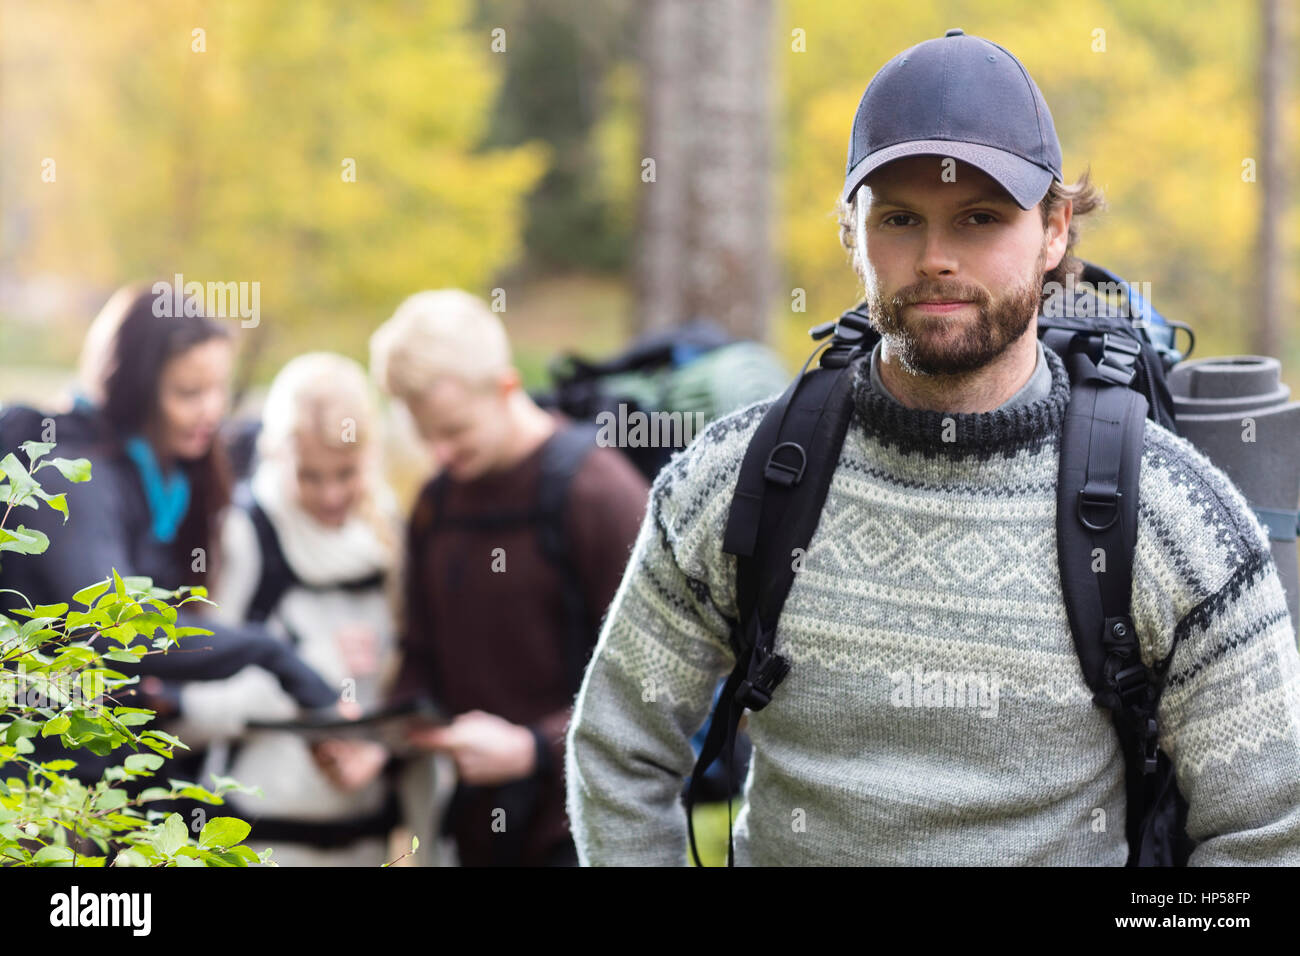 Confident Male Hiker With Friends Discussing In Background - Stock Image